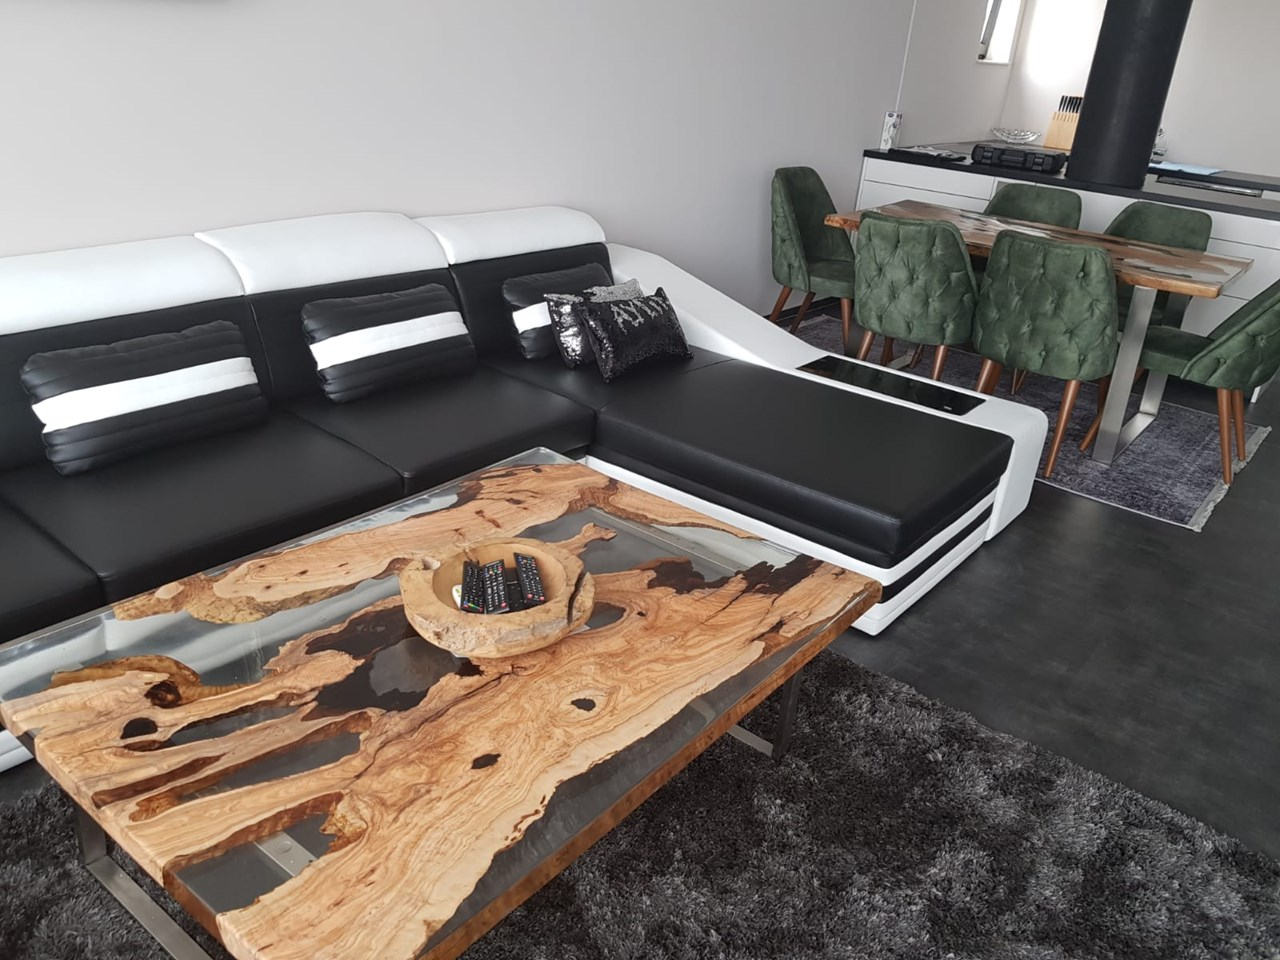 Epoxy Coffee Table'in resmi